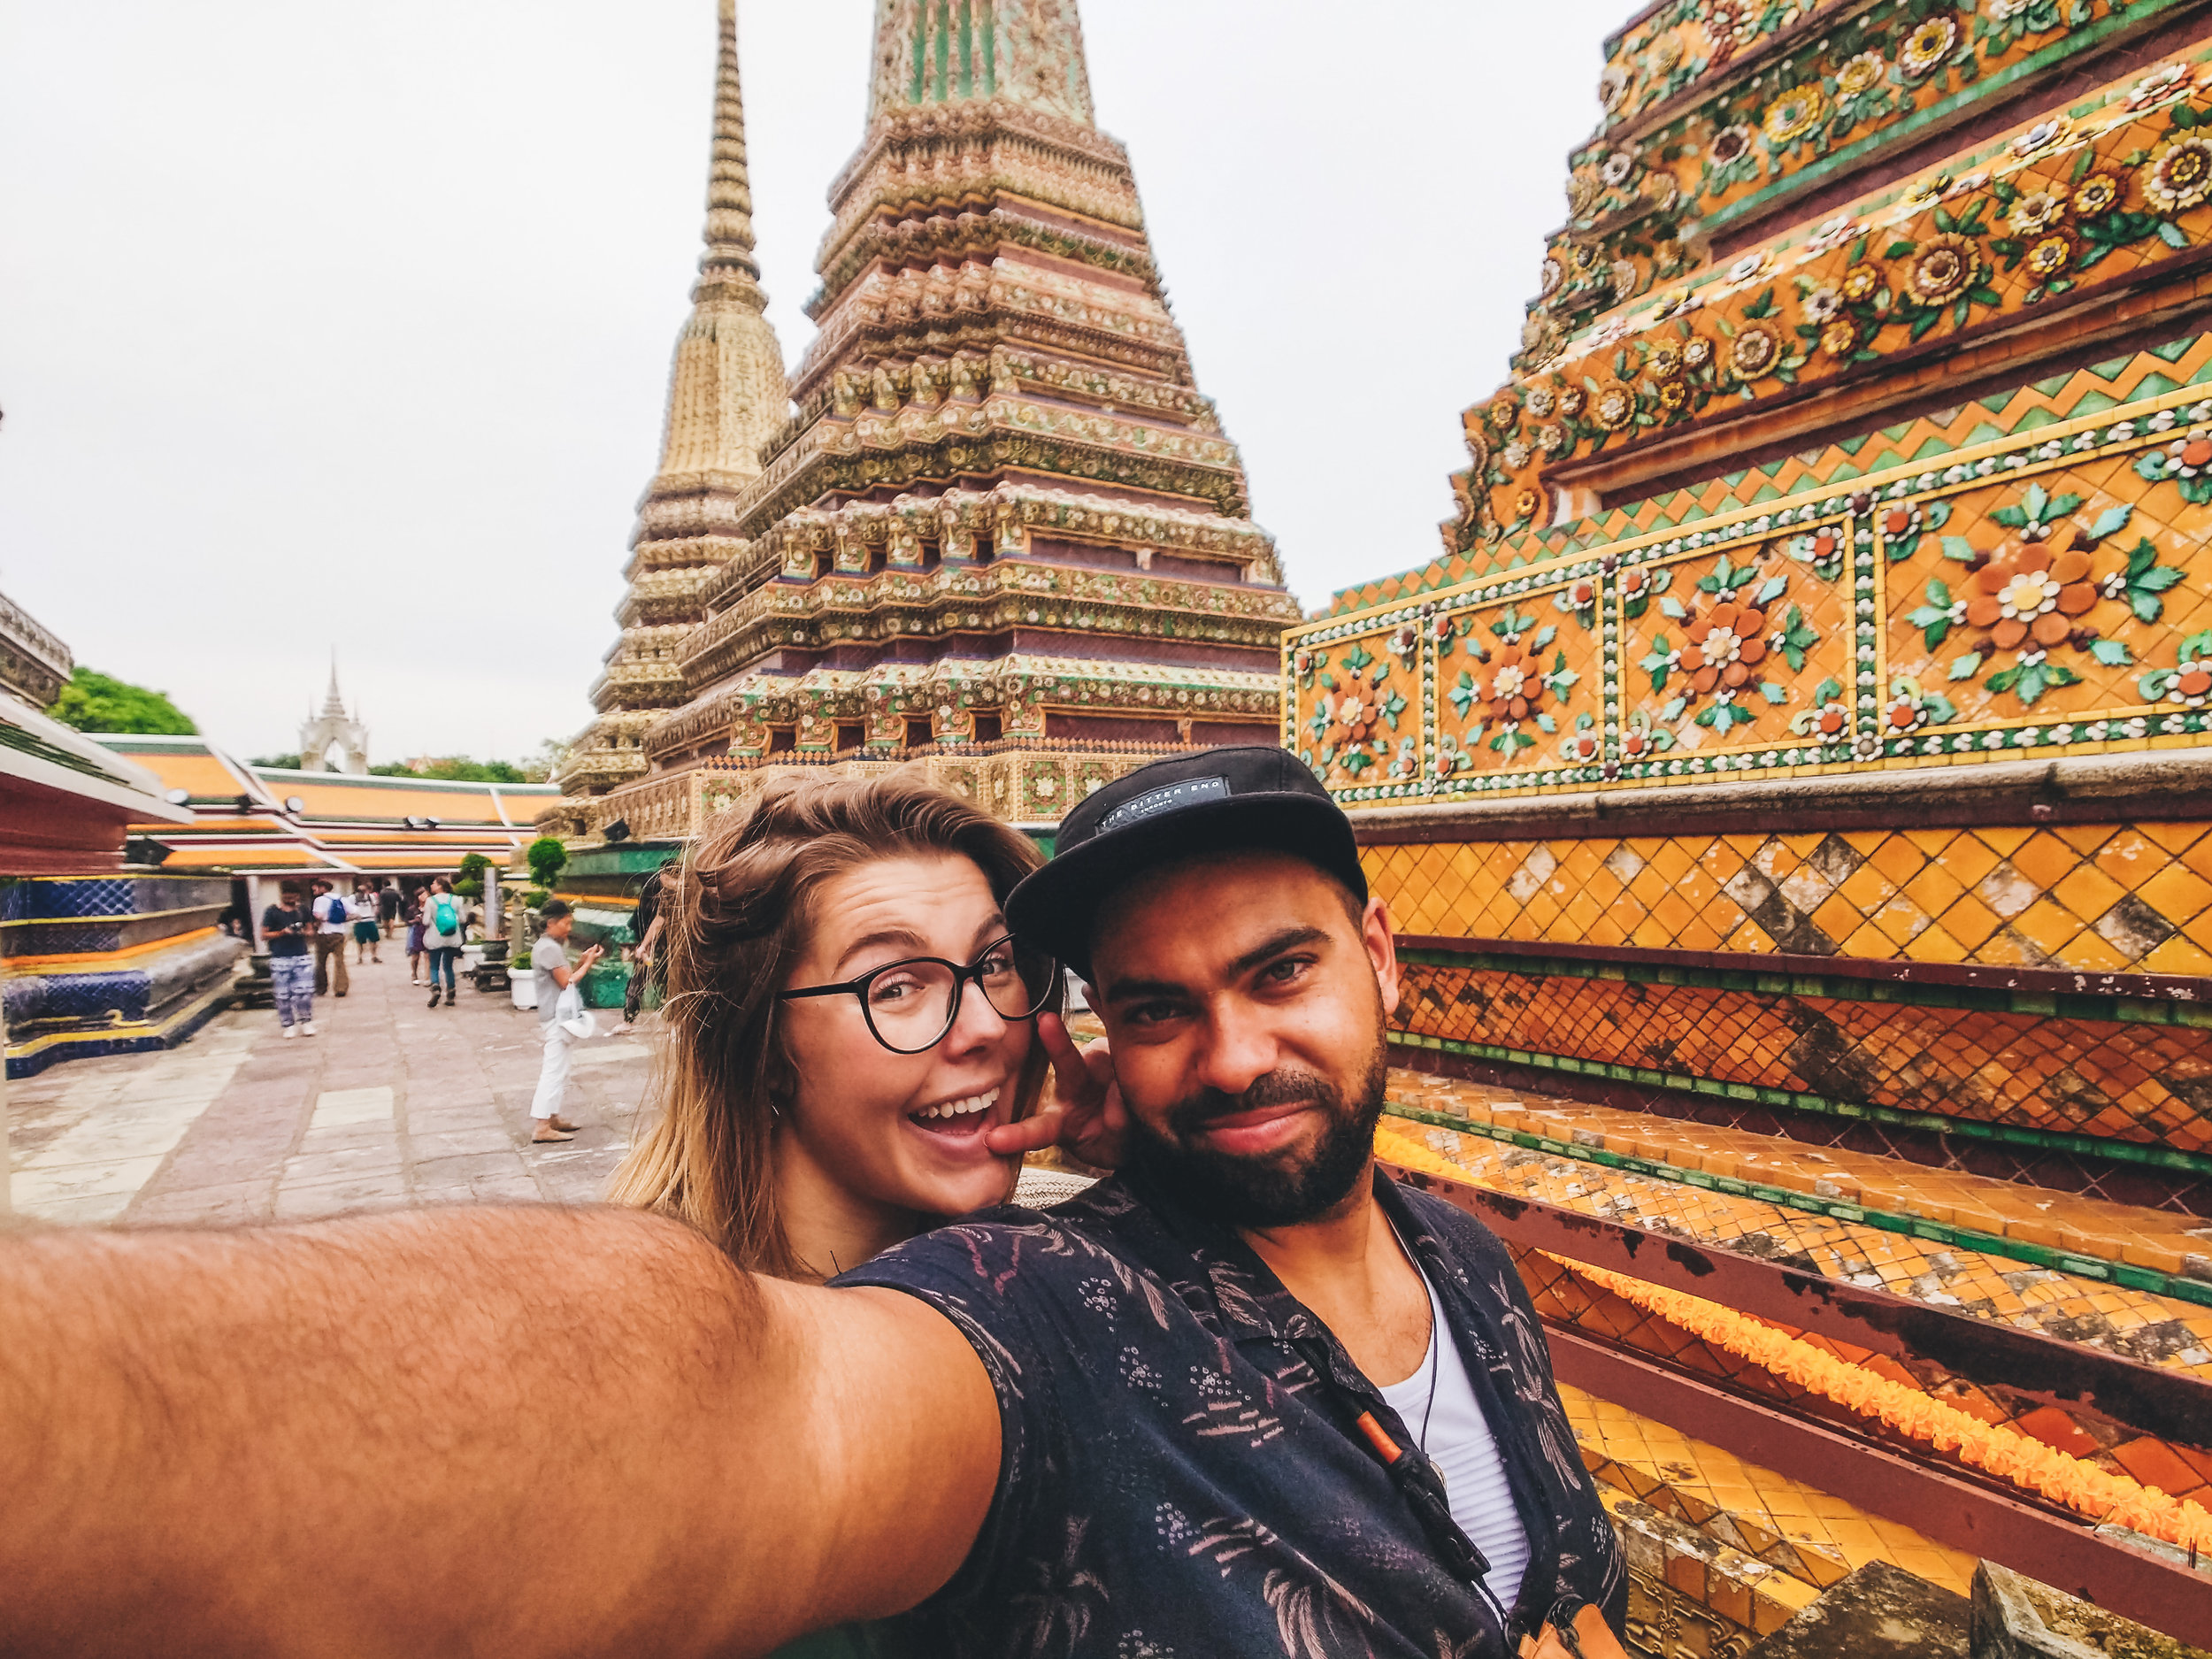 BANGKOK, THAILAND - Bangkok Photos All Taken on The Pixel2 with Moment Lenses